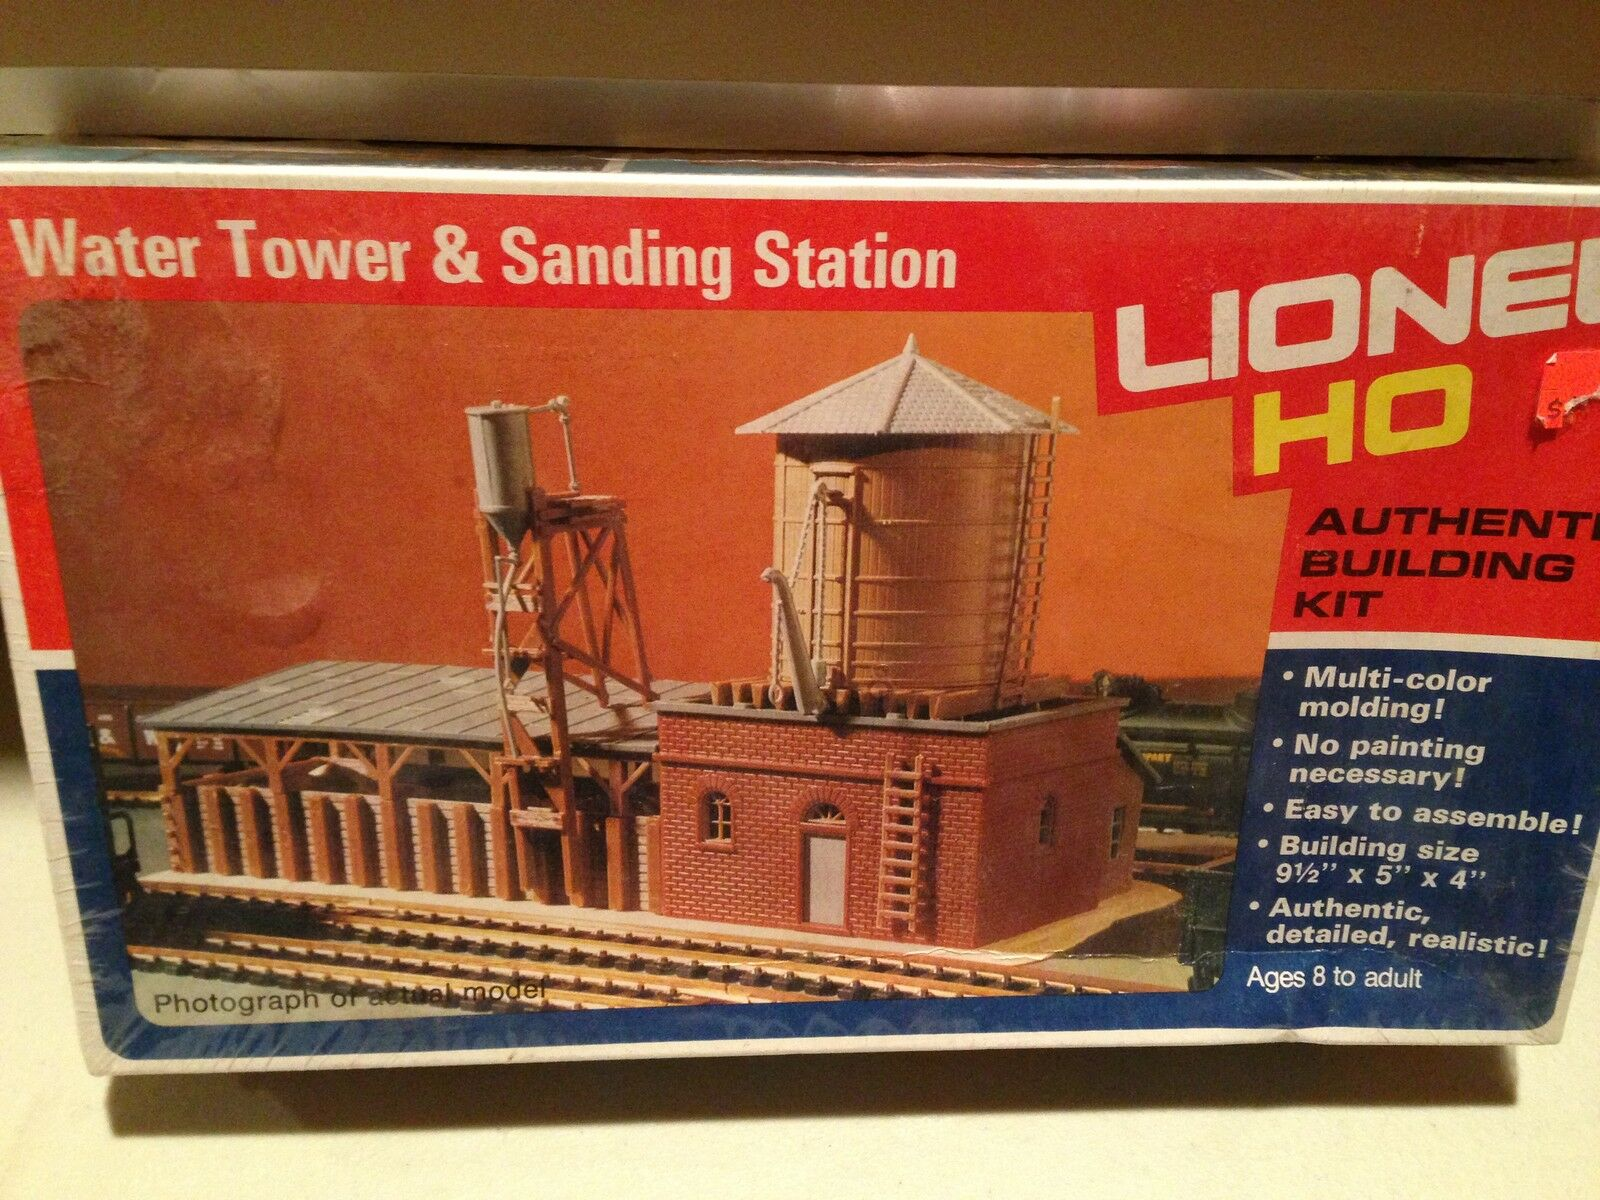 Lionel Lionel Lionel HO Scale Water Tower Building Kit Never Used Sealed Box 34a554